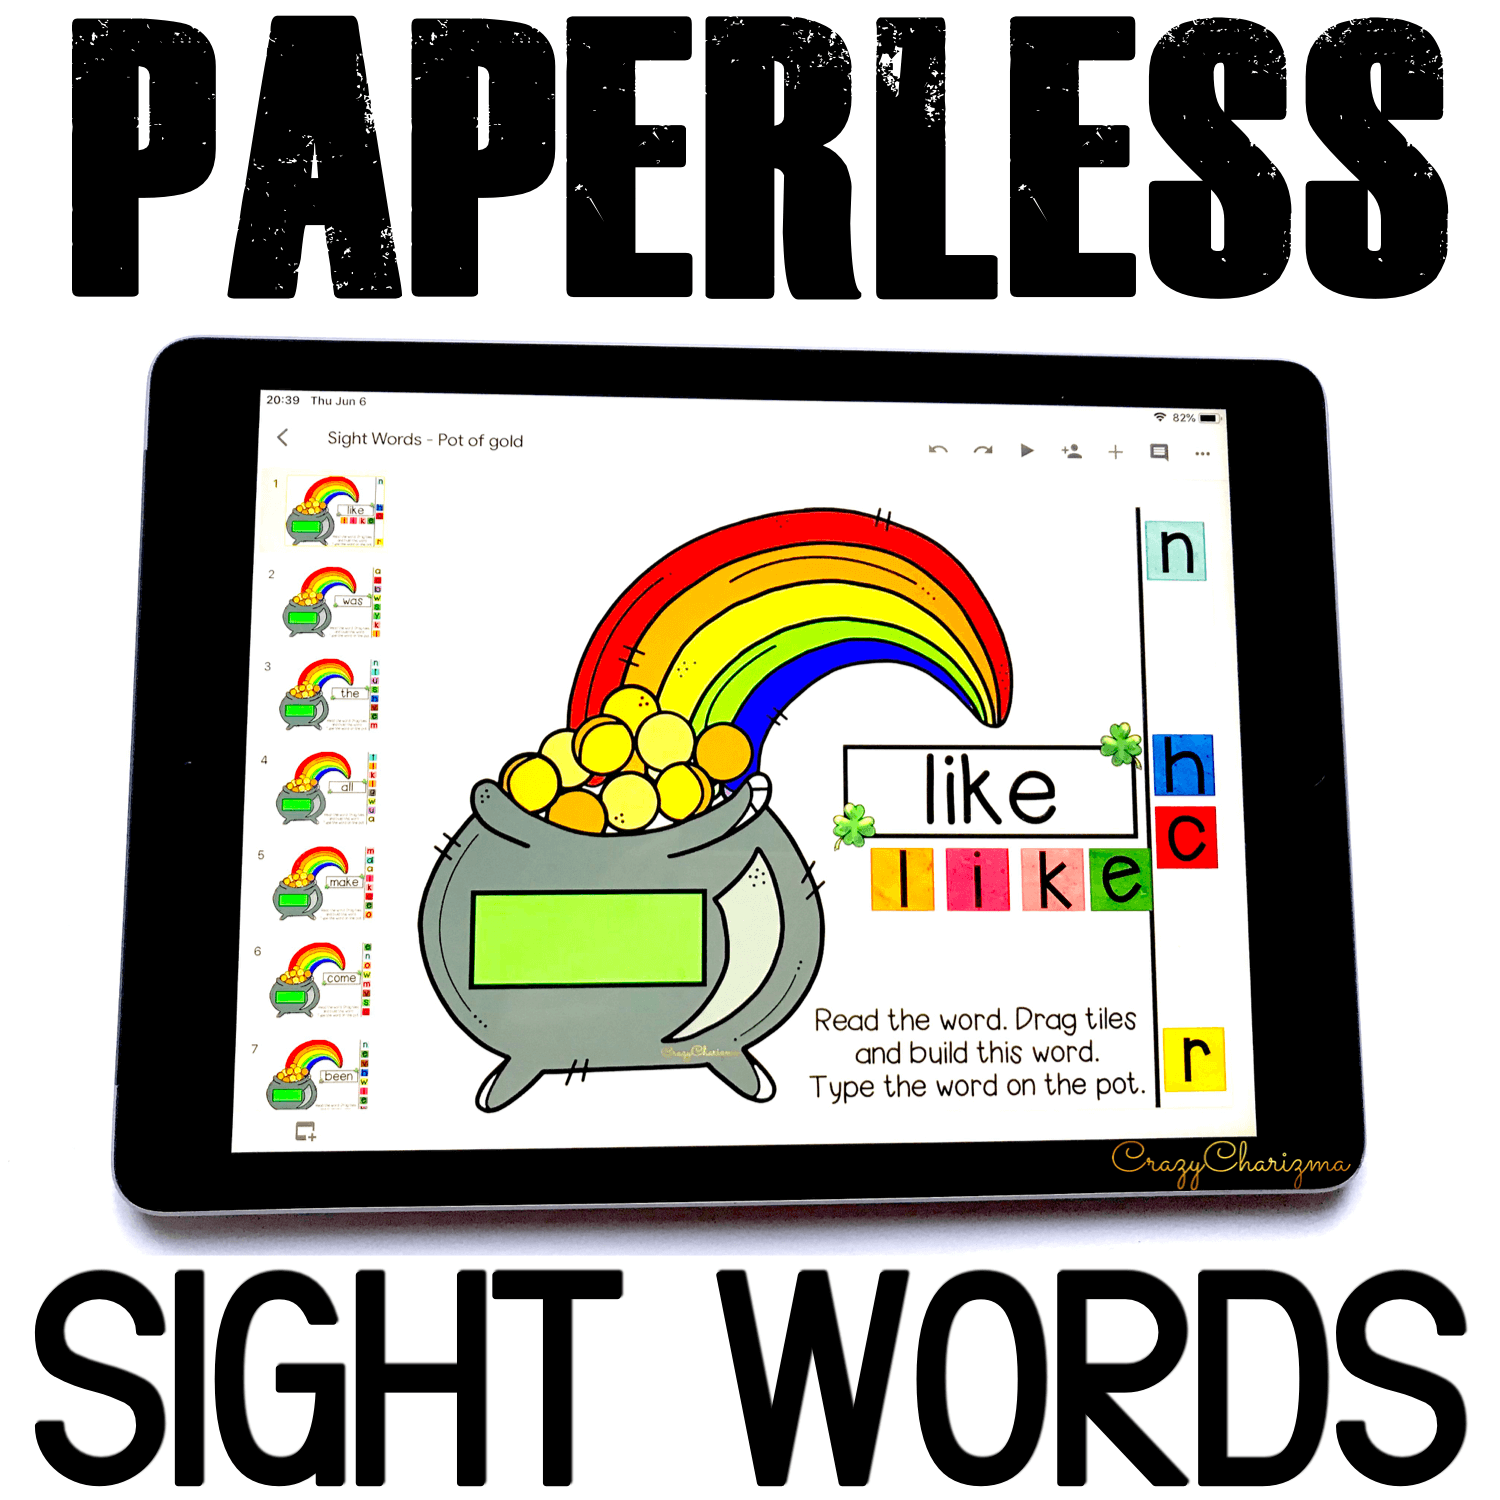 Google Classroom Activities for Kindergarten. Sight words. Need a fun way to practice sight words on St.Patrick's Day? Get kids engaged with the games for Google Classroom! Embrace the tech and have fun! #CrazyCharizma #GoogleClassroom #GoogleClassroomKindergarten #HandsOnActivitiesForKids #PaperlessClassroomElementary #SightWordGames #StPatricksDayActivities